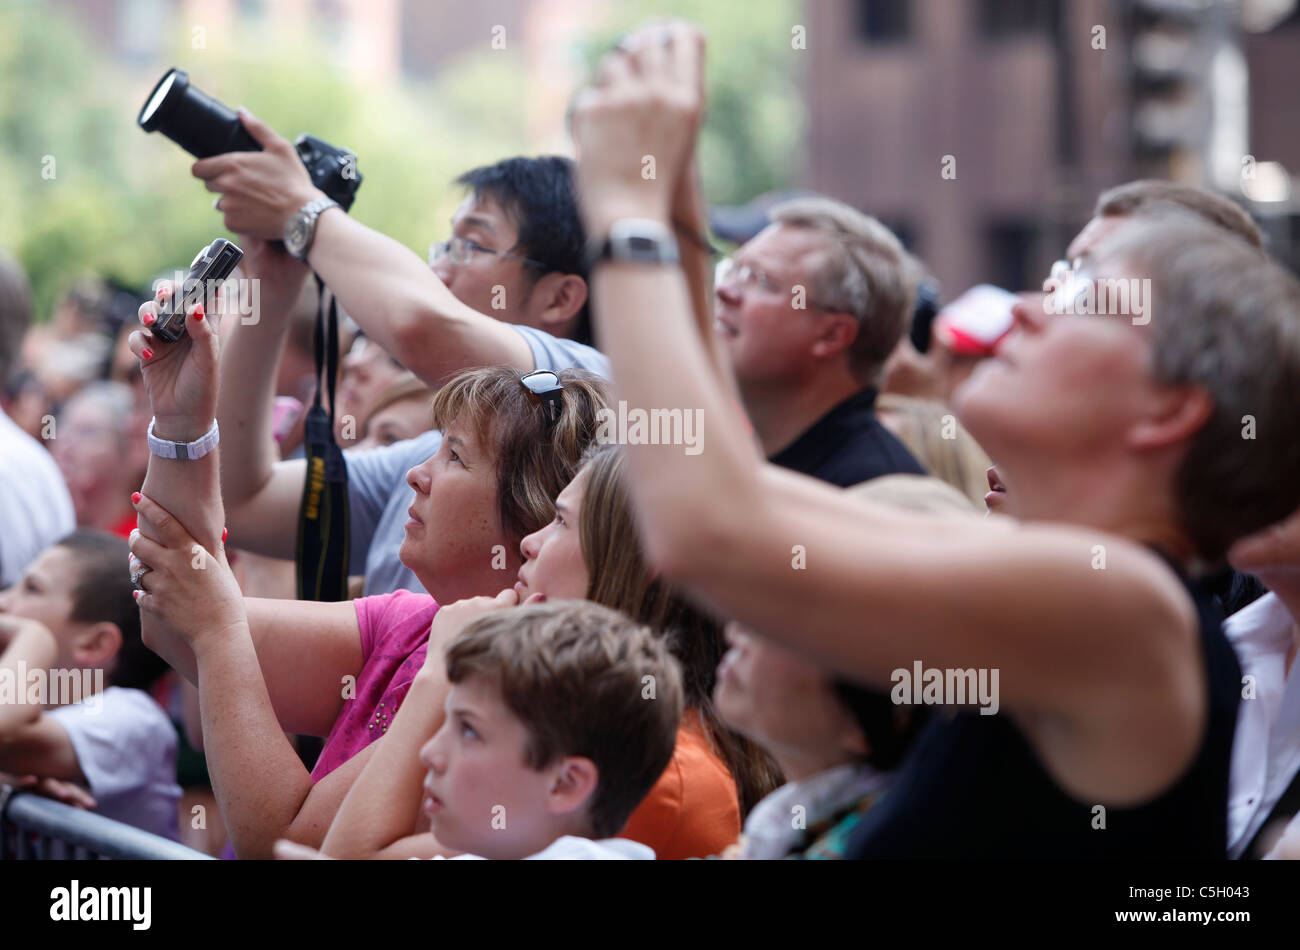 Crowd of people taking photographs - Stock Image